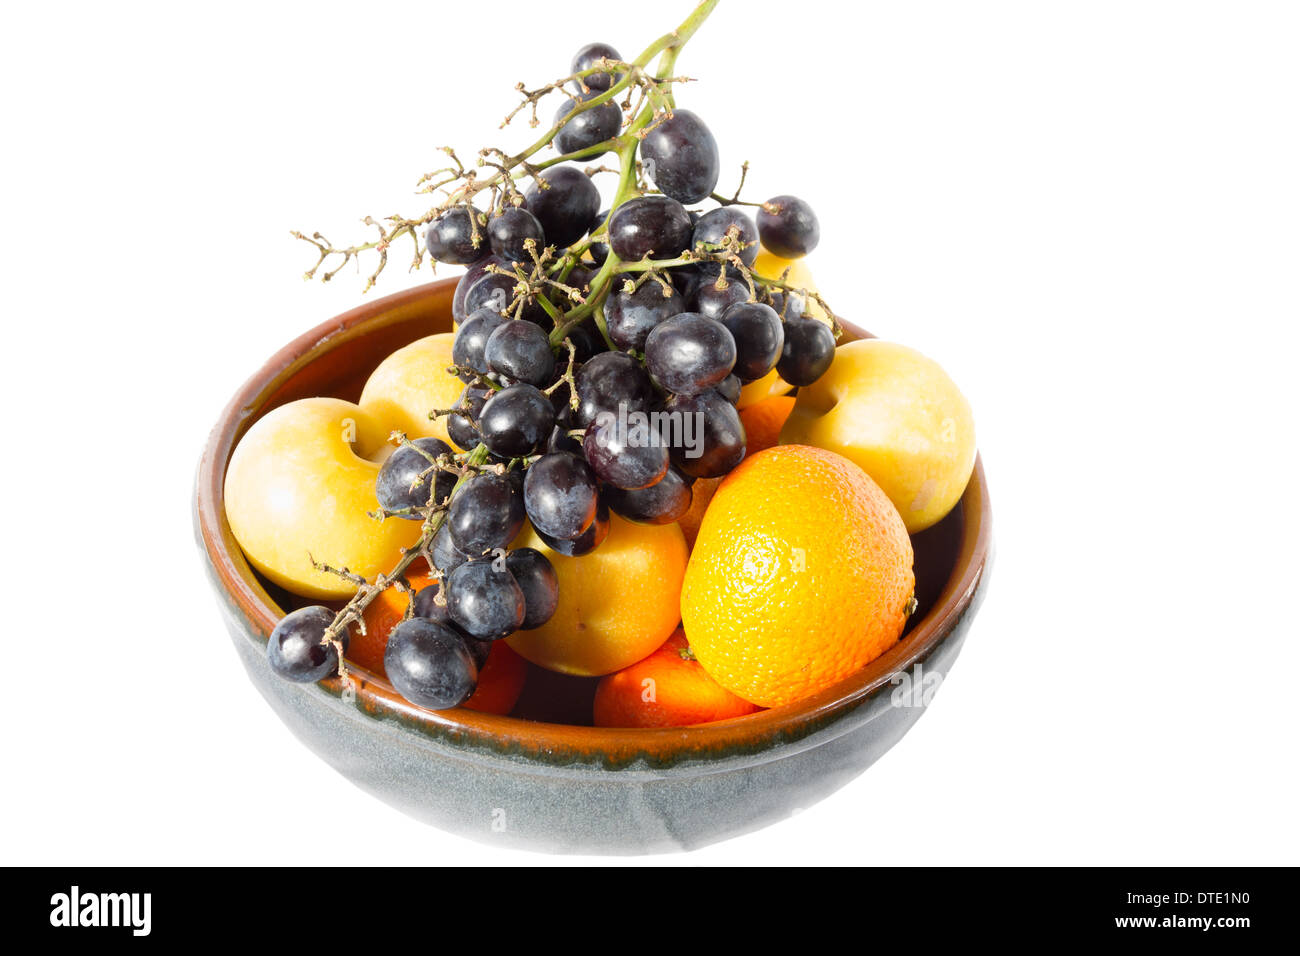 A bowl of fruit to include oranges and grapes - Stock Image